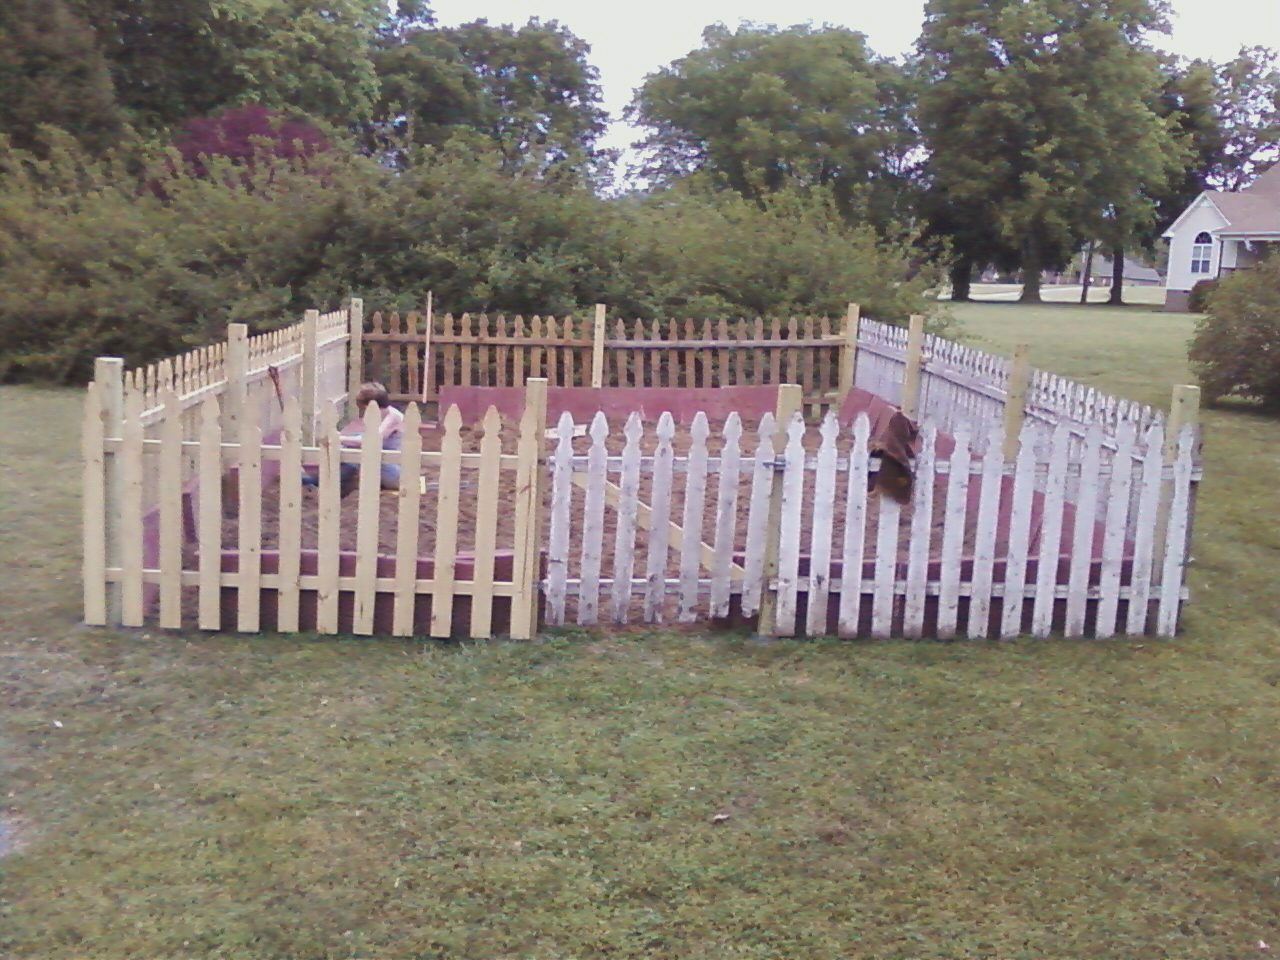 New and old fencing combined to keep the critters out